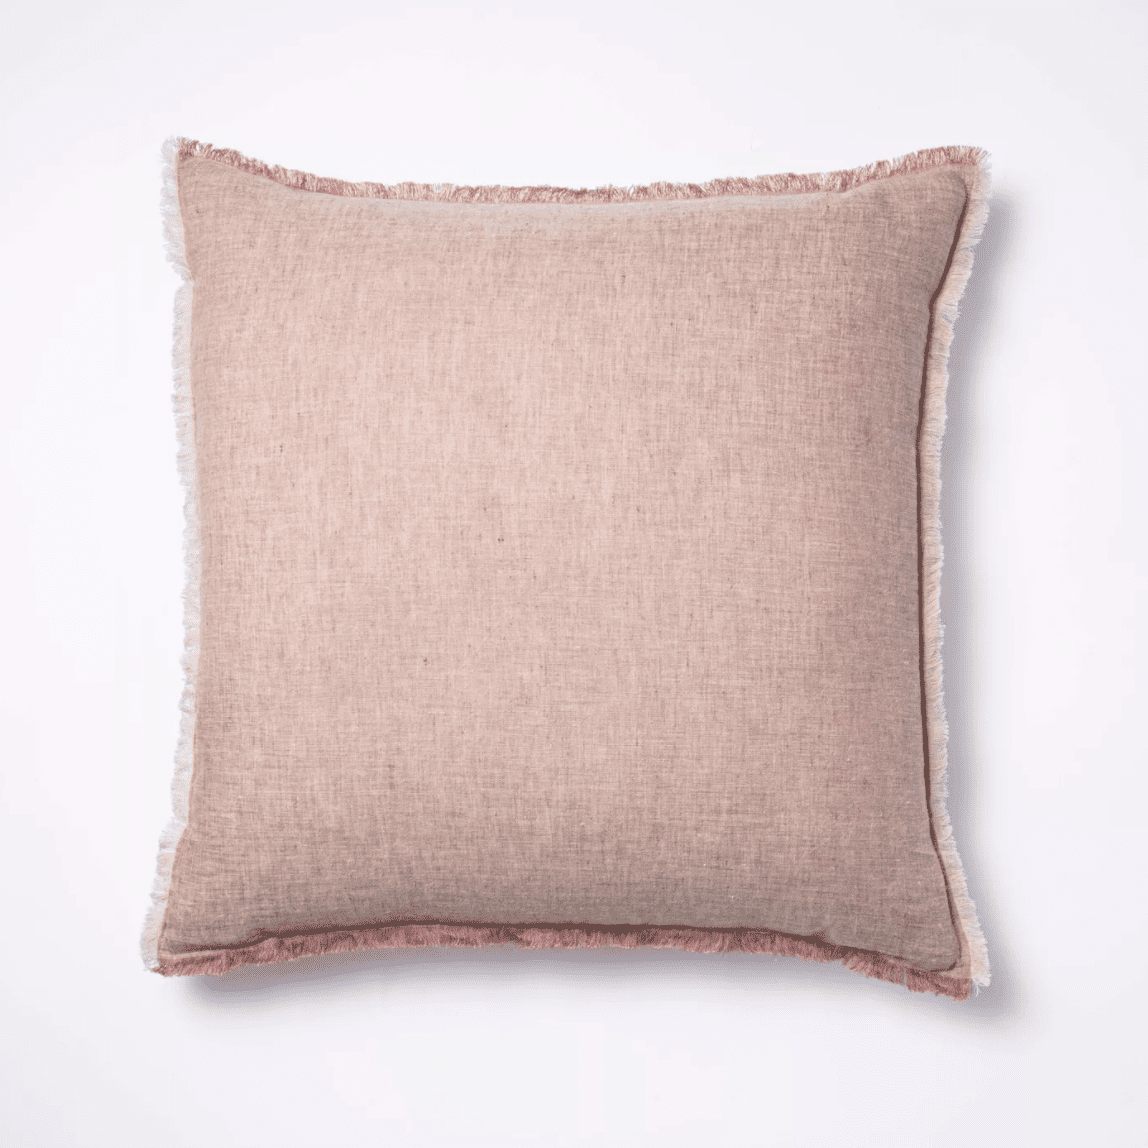 Linen Throw Pillow with Frayed Edges